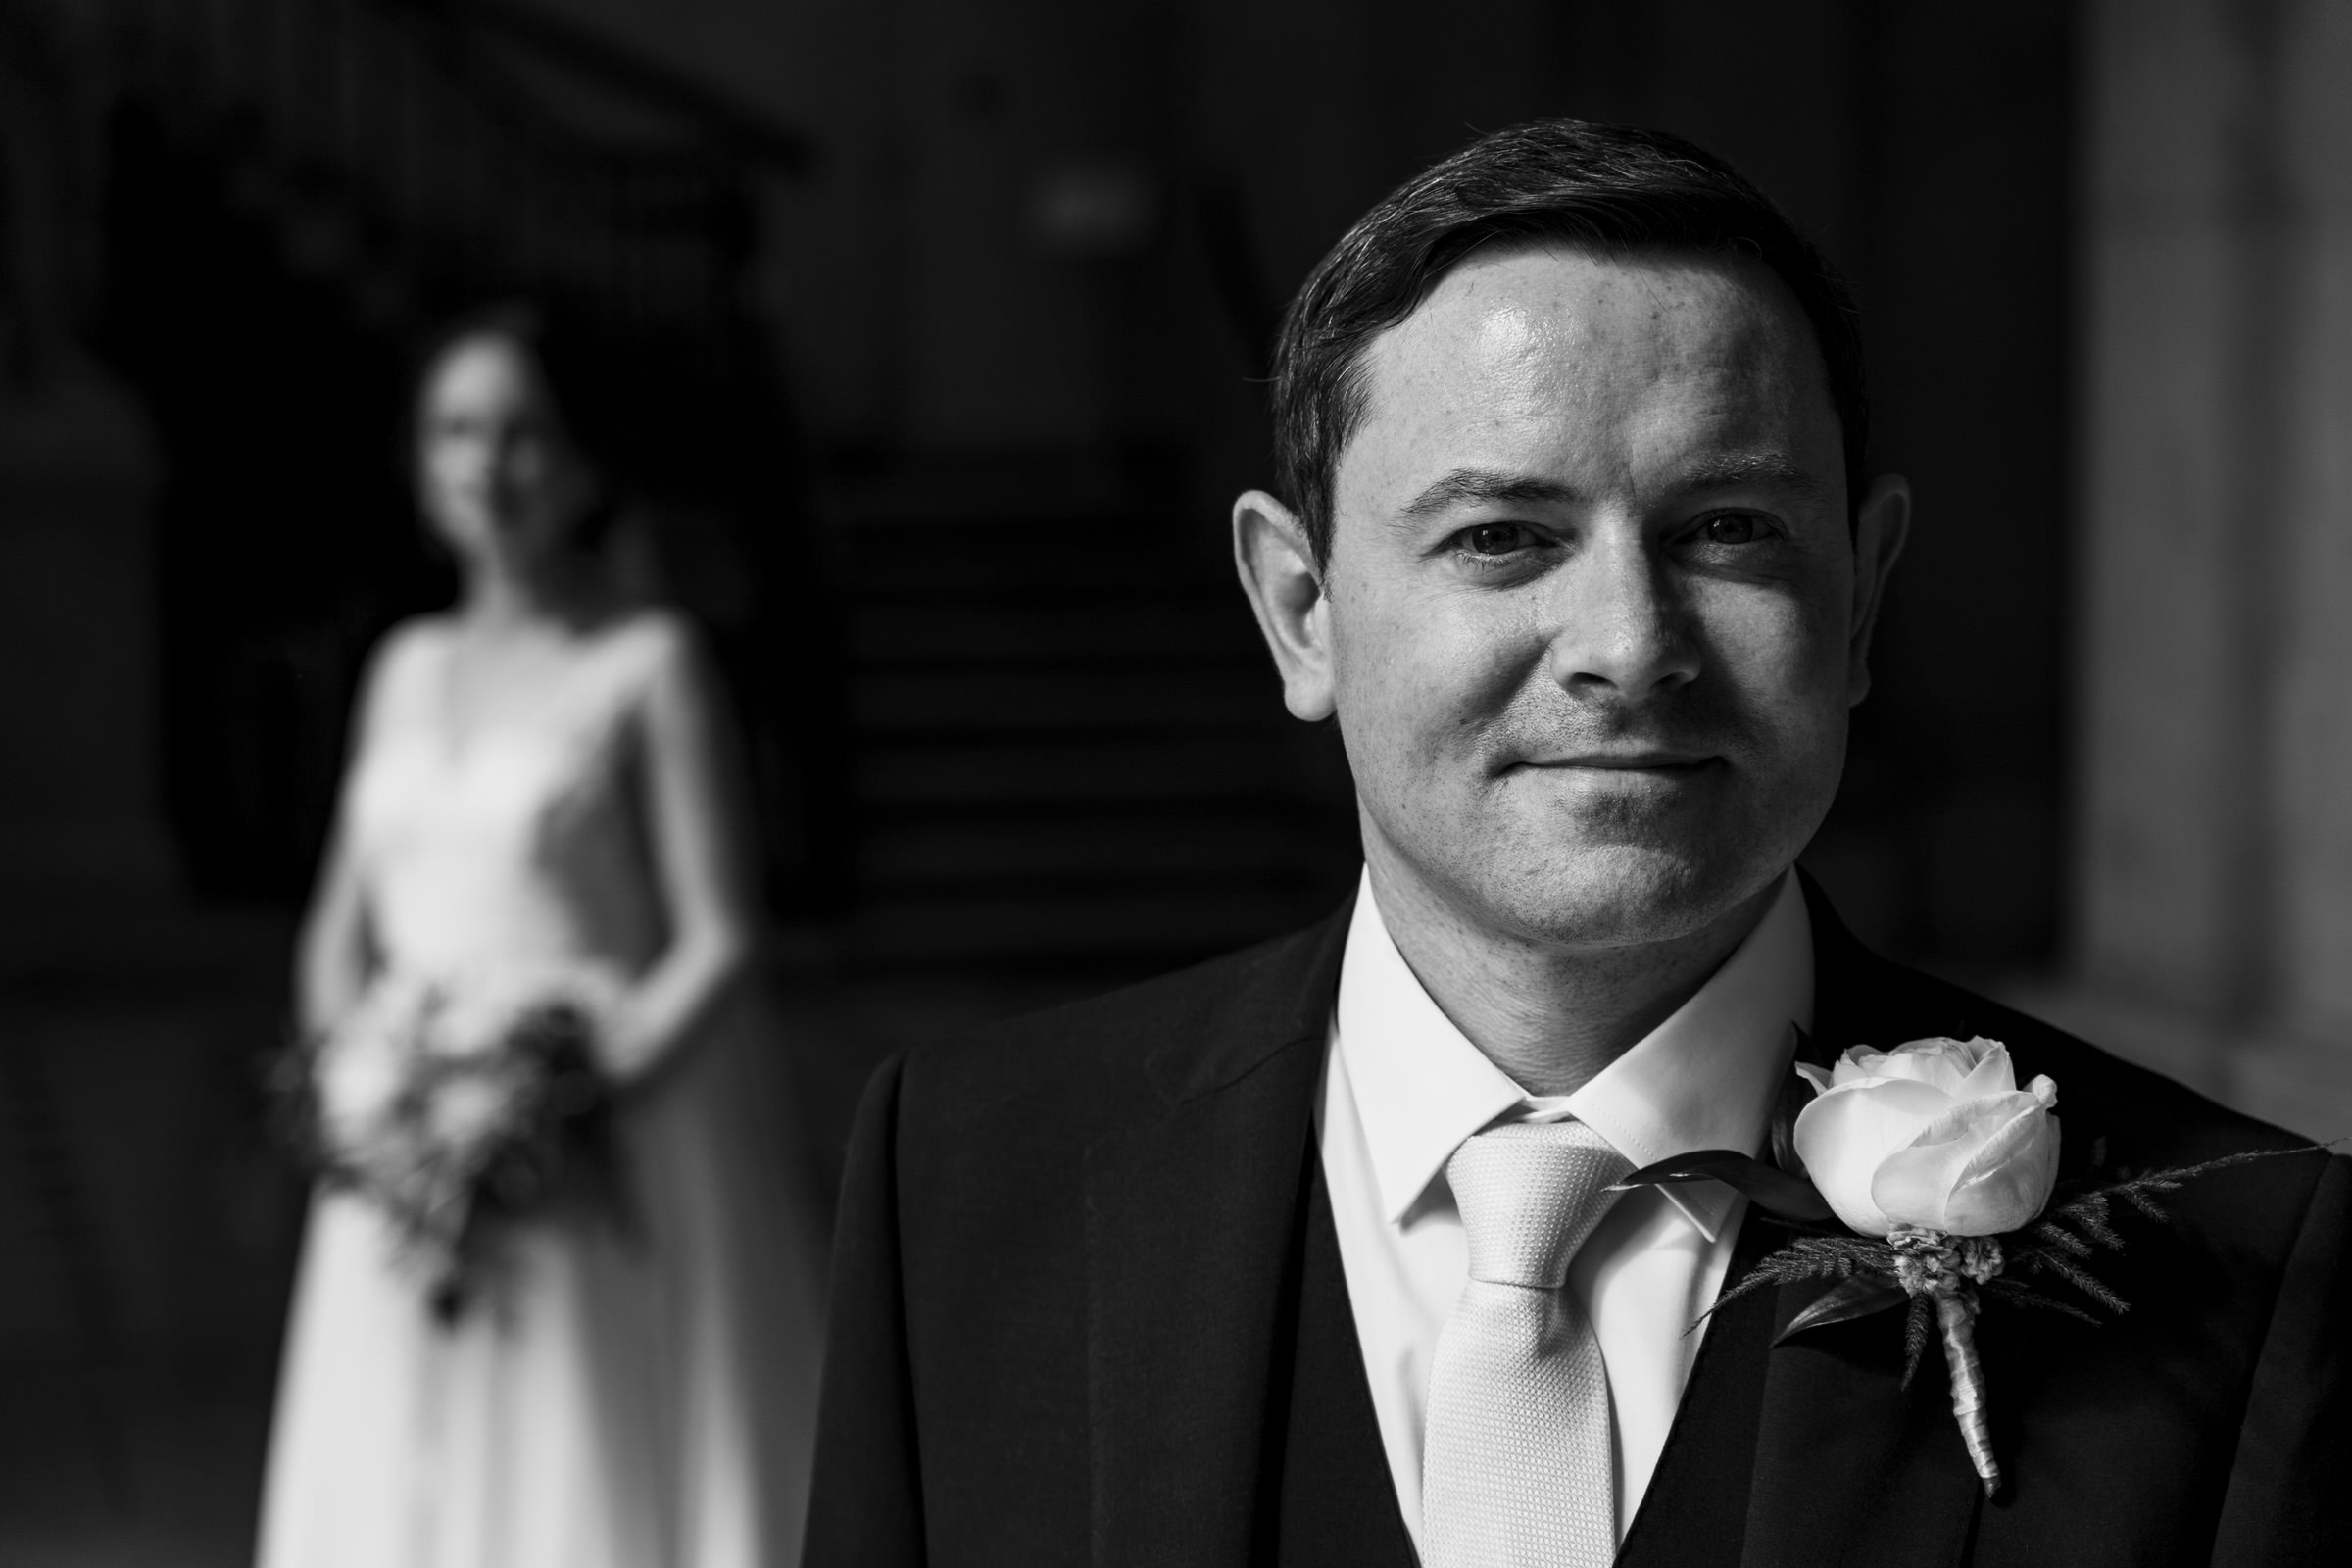 Groom portrait with bride in background - photo by The Portrait Rooms